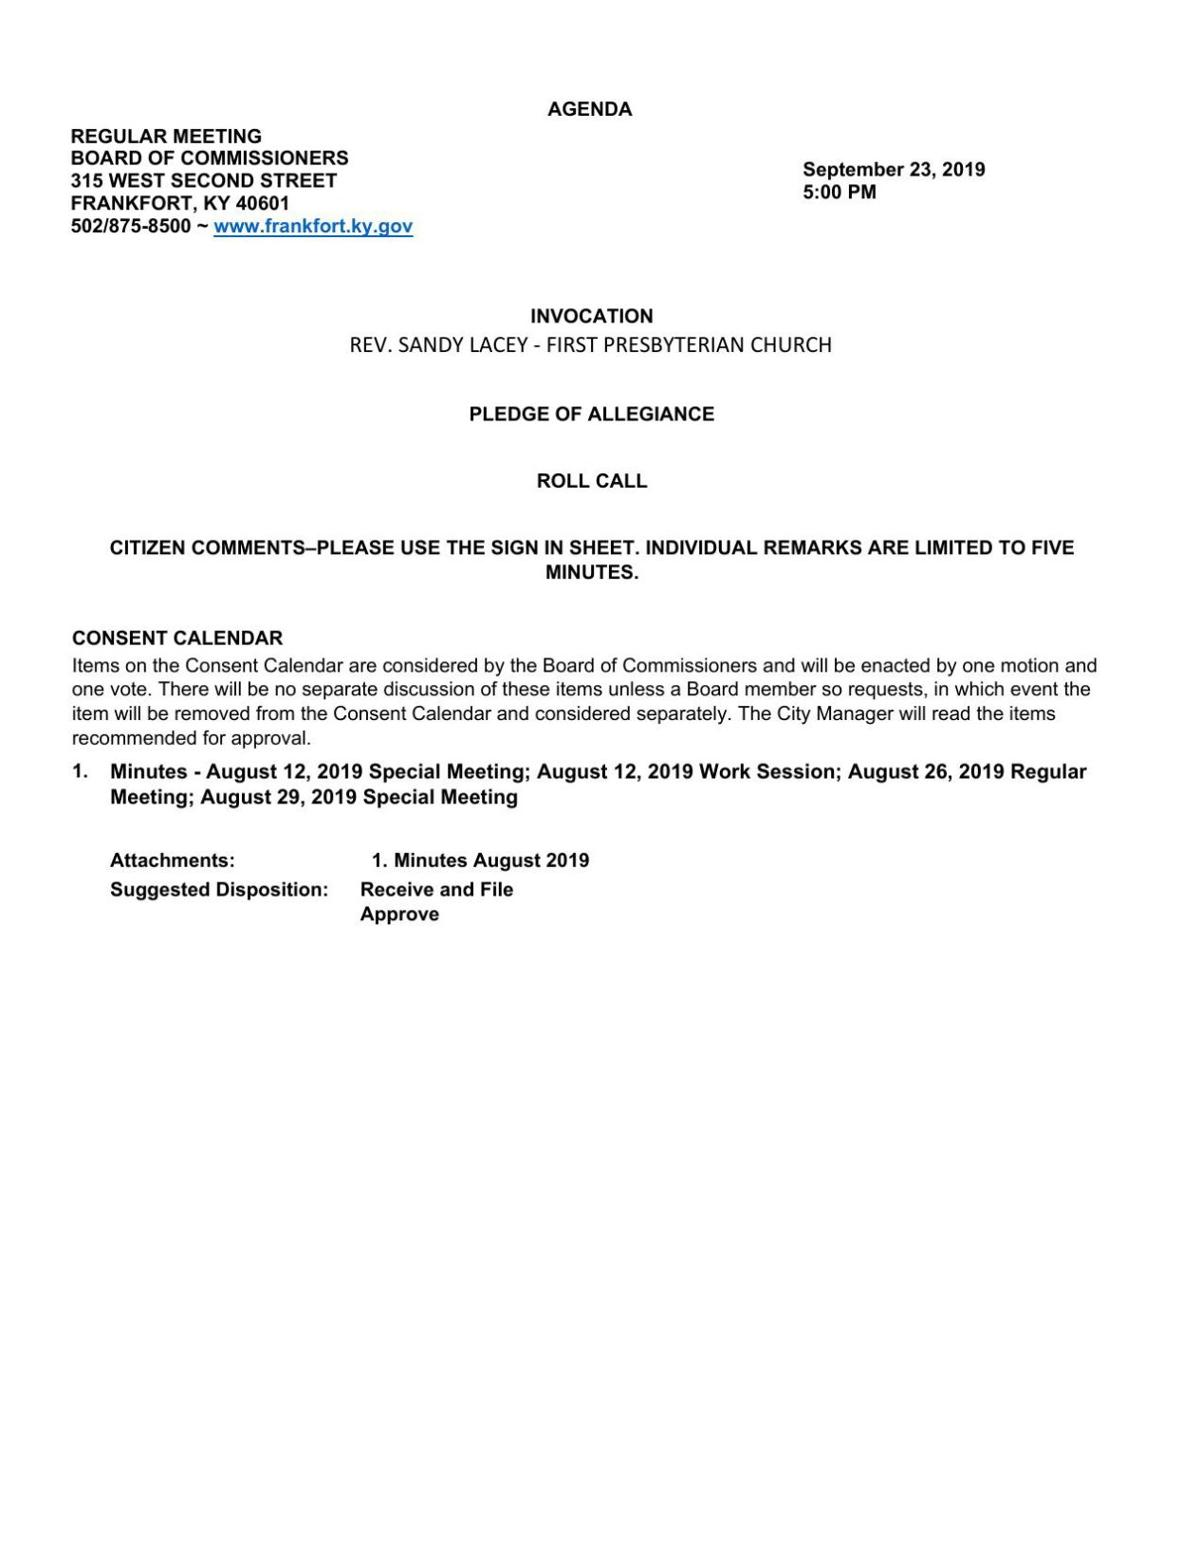 Frankfort City Commission agenda - Sept. 23, 2019